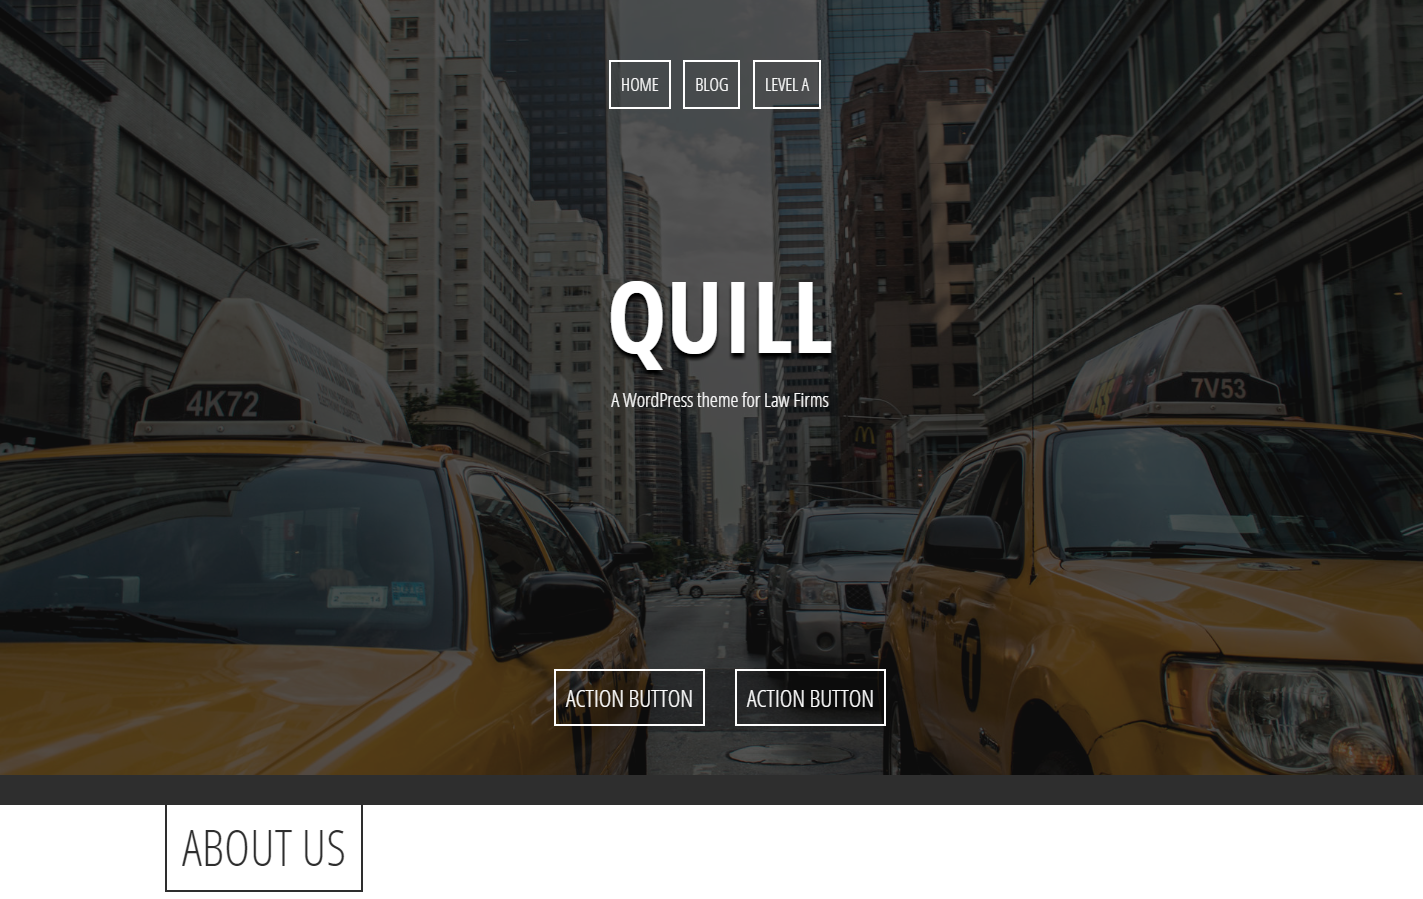 quill-free-wordpress-theme